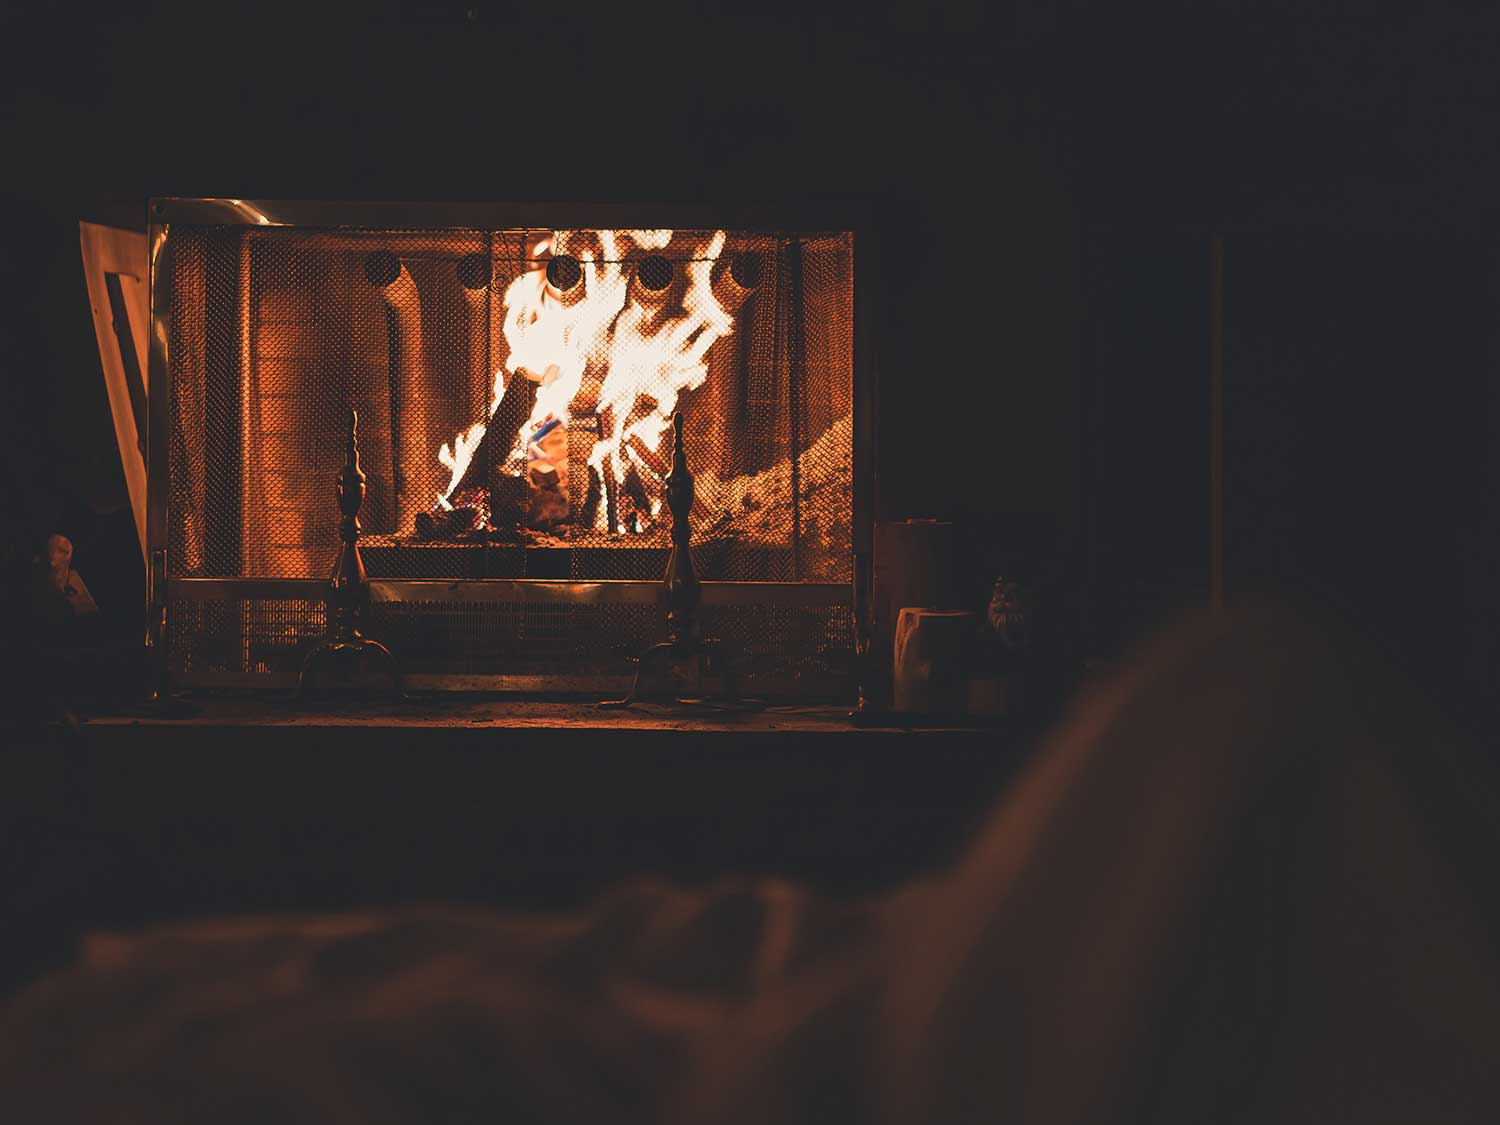 Wood burning in fireplace.